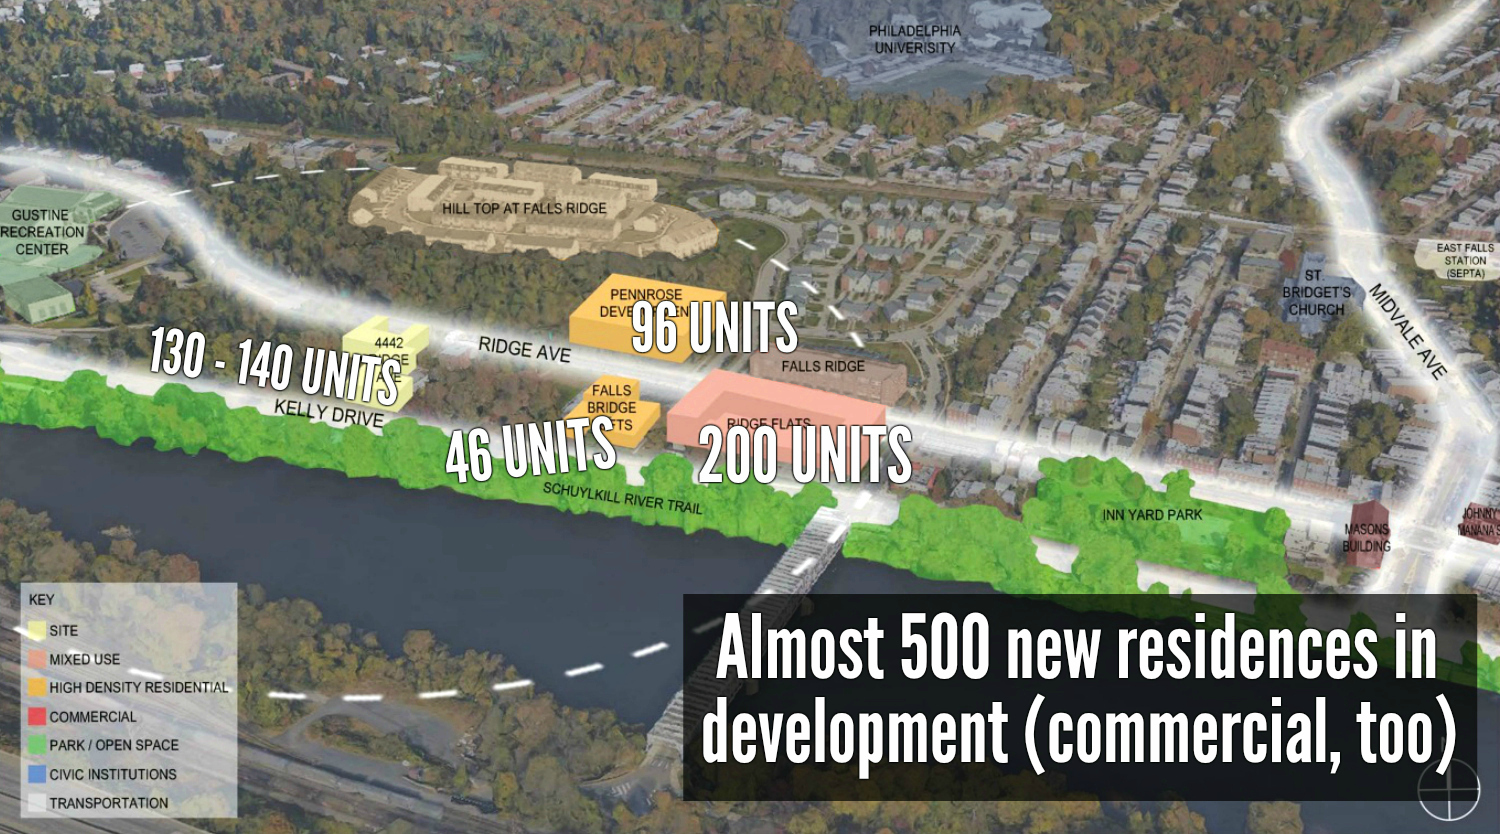 EastFallsLocal text pop up map collage almost 500 new residences in development color